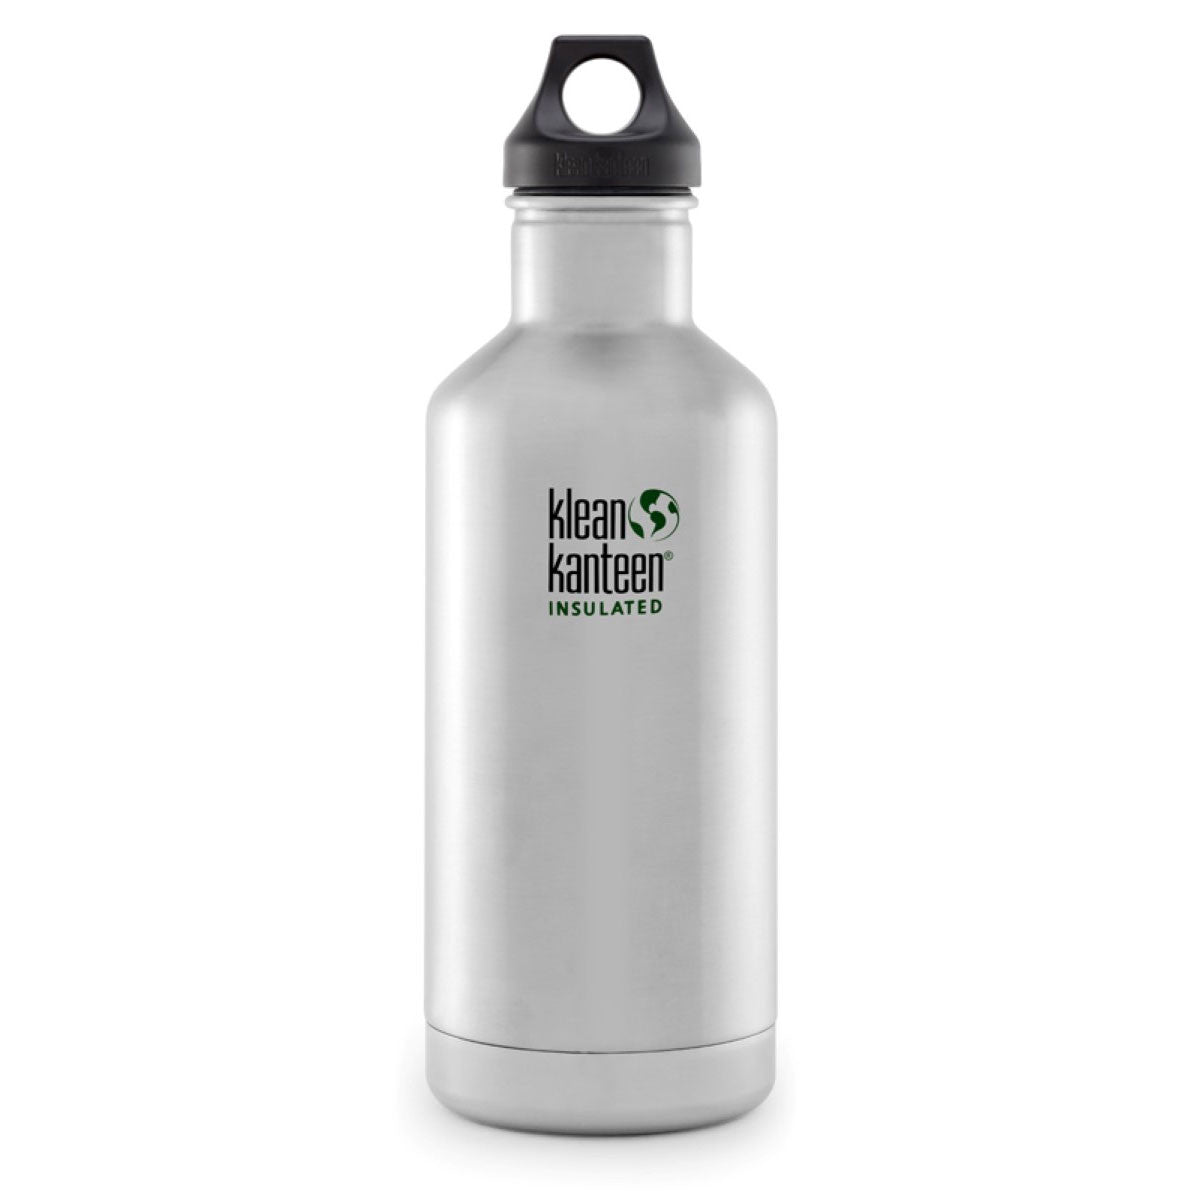 Klean Kanteen Stainless Steel Insulated Classic Water Bottle  946ml 32oz / Brushed Stainless - Klean Kanteen - Little Earth Nest - 26